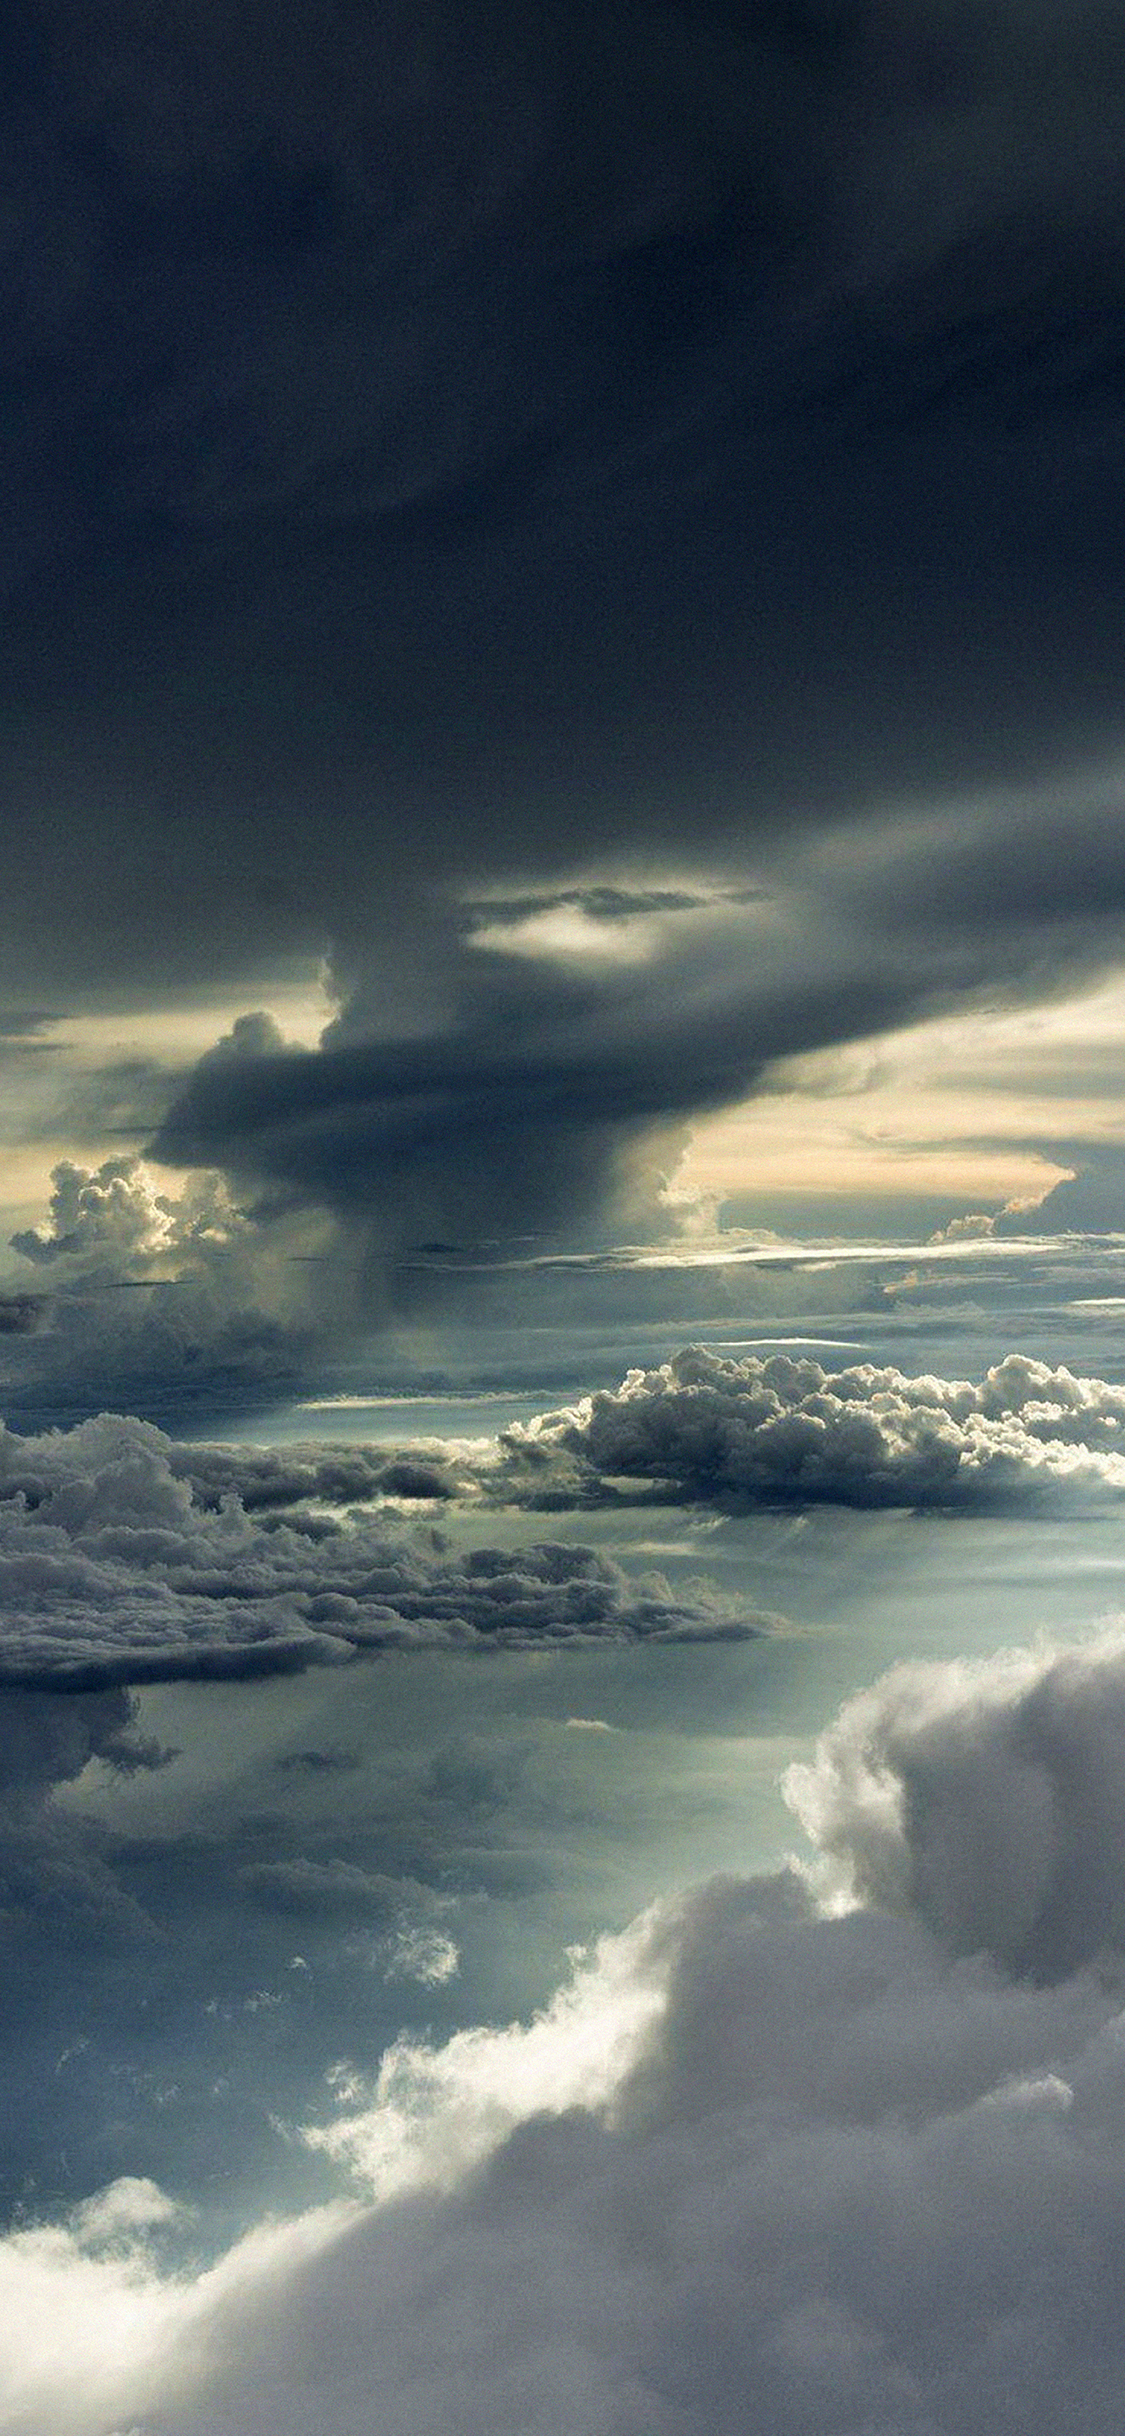 iPhoneXpapers.com-Apple-iPhone-wallpaper-mc83-wallpaper-between-storm-clouds-sky